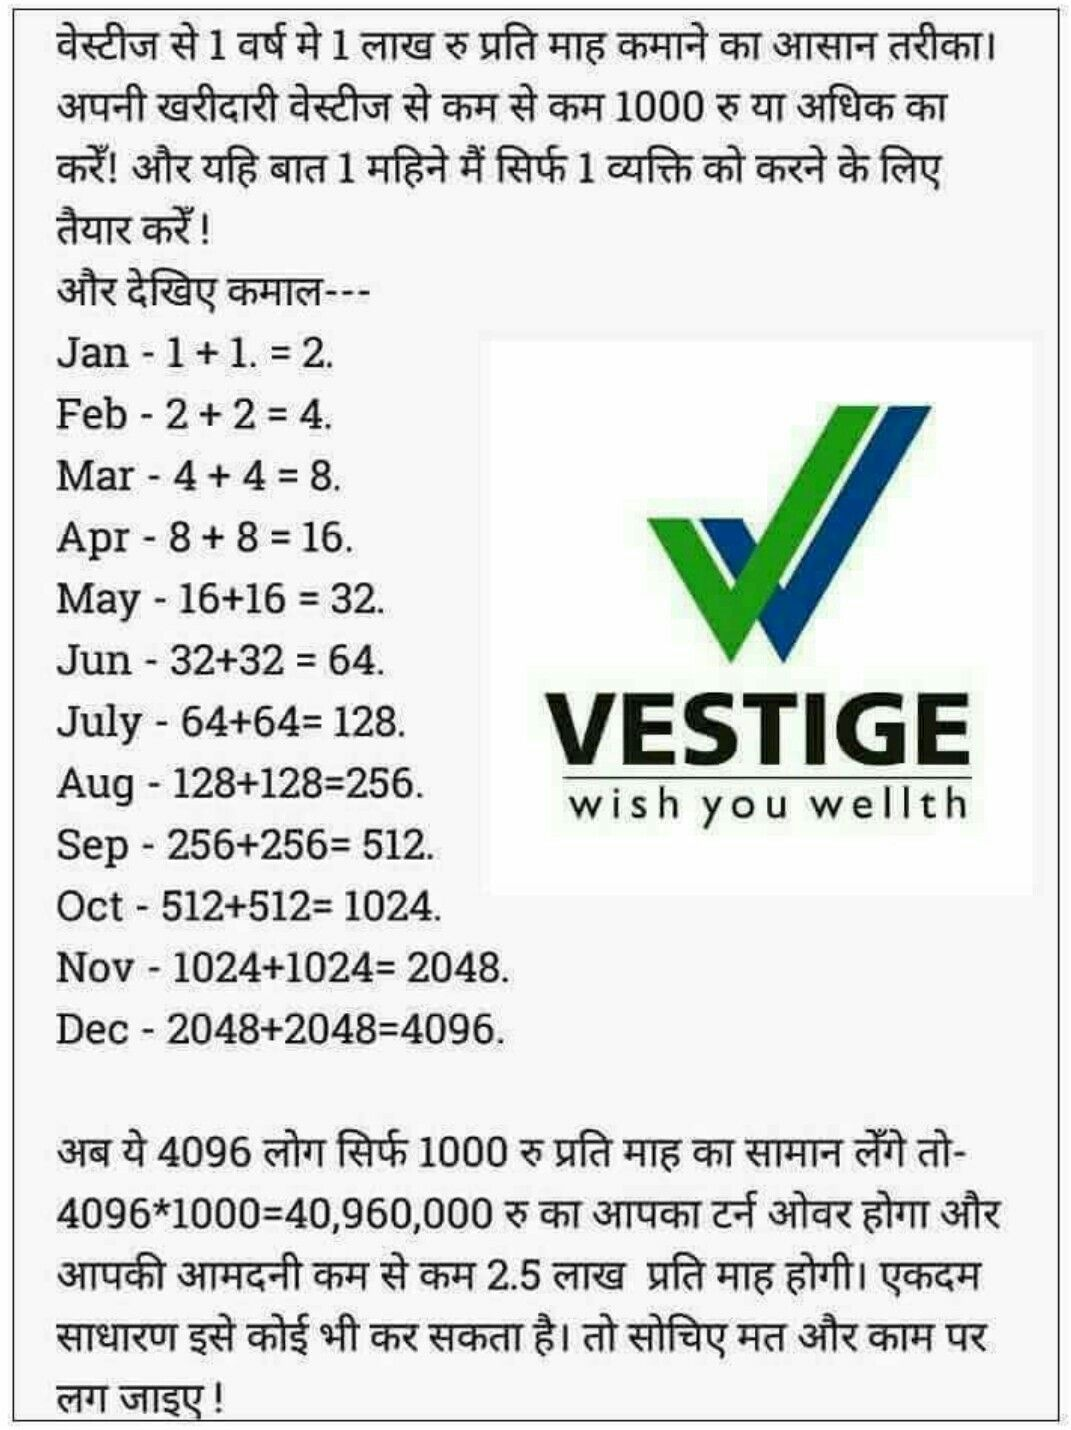 Pin by Sunita Bharti on about vestige.. Network